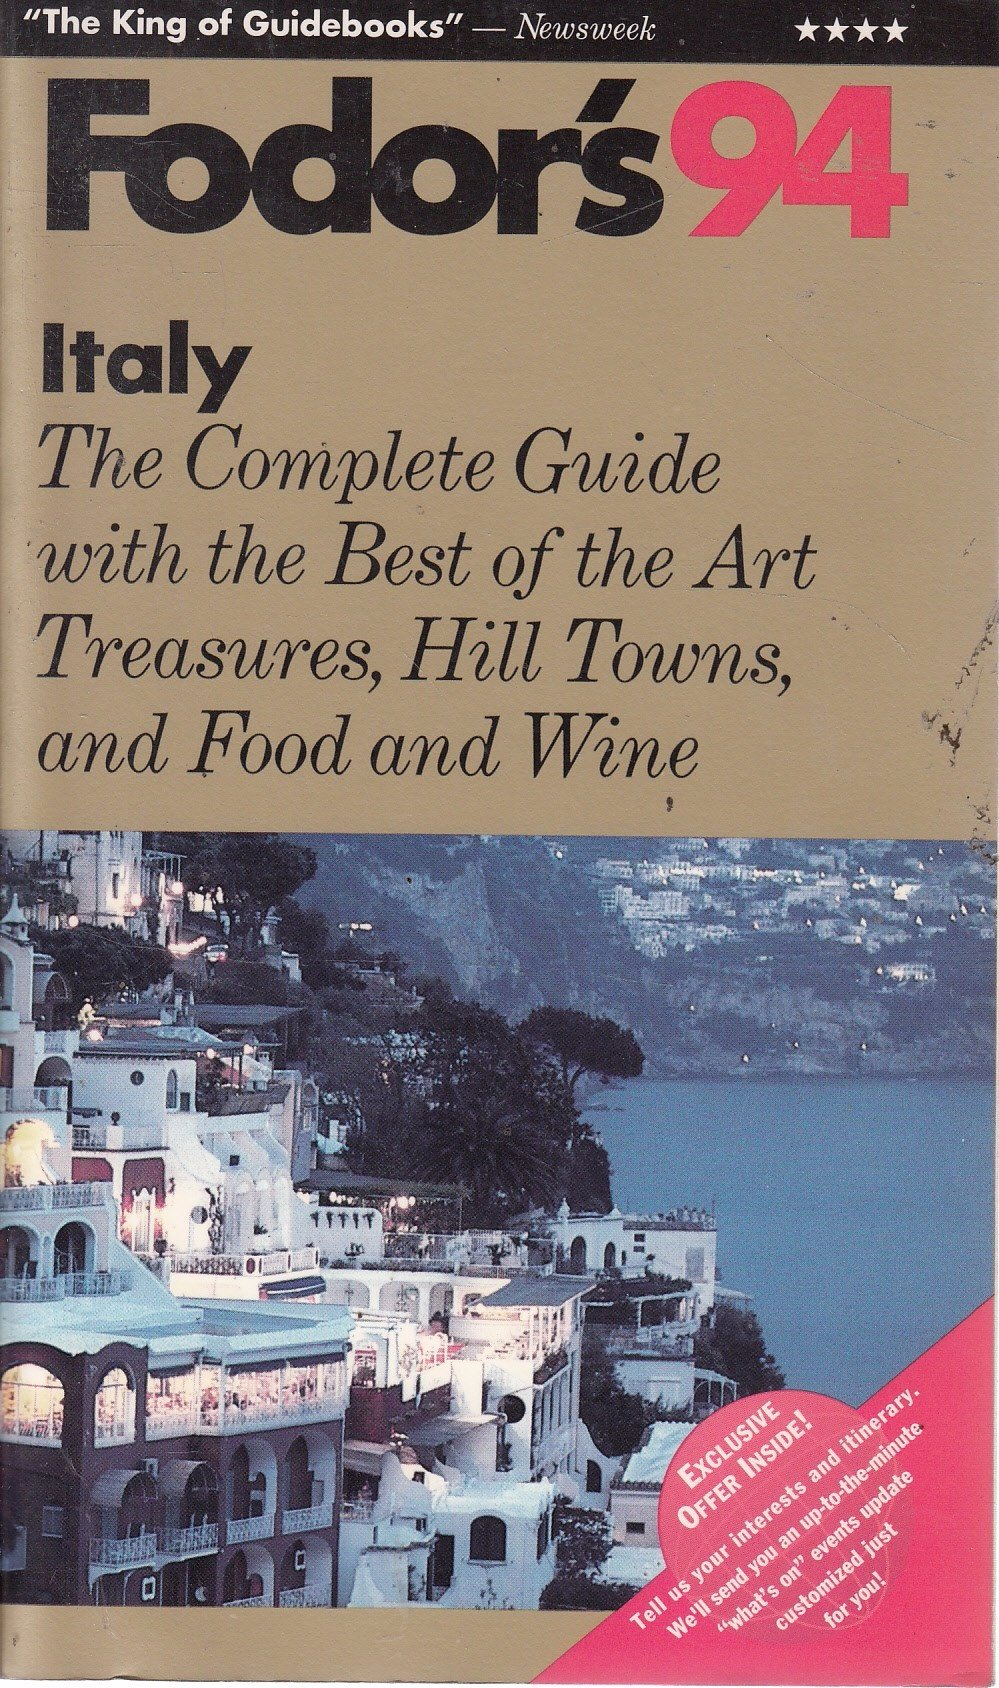 Italy '94: The Complete Guide with the Best of the Art Treasures